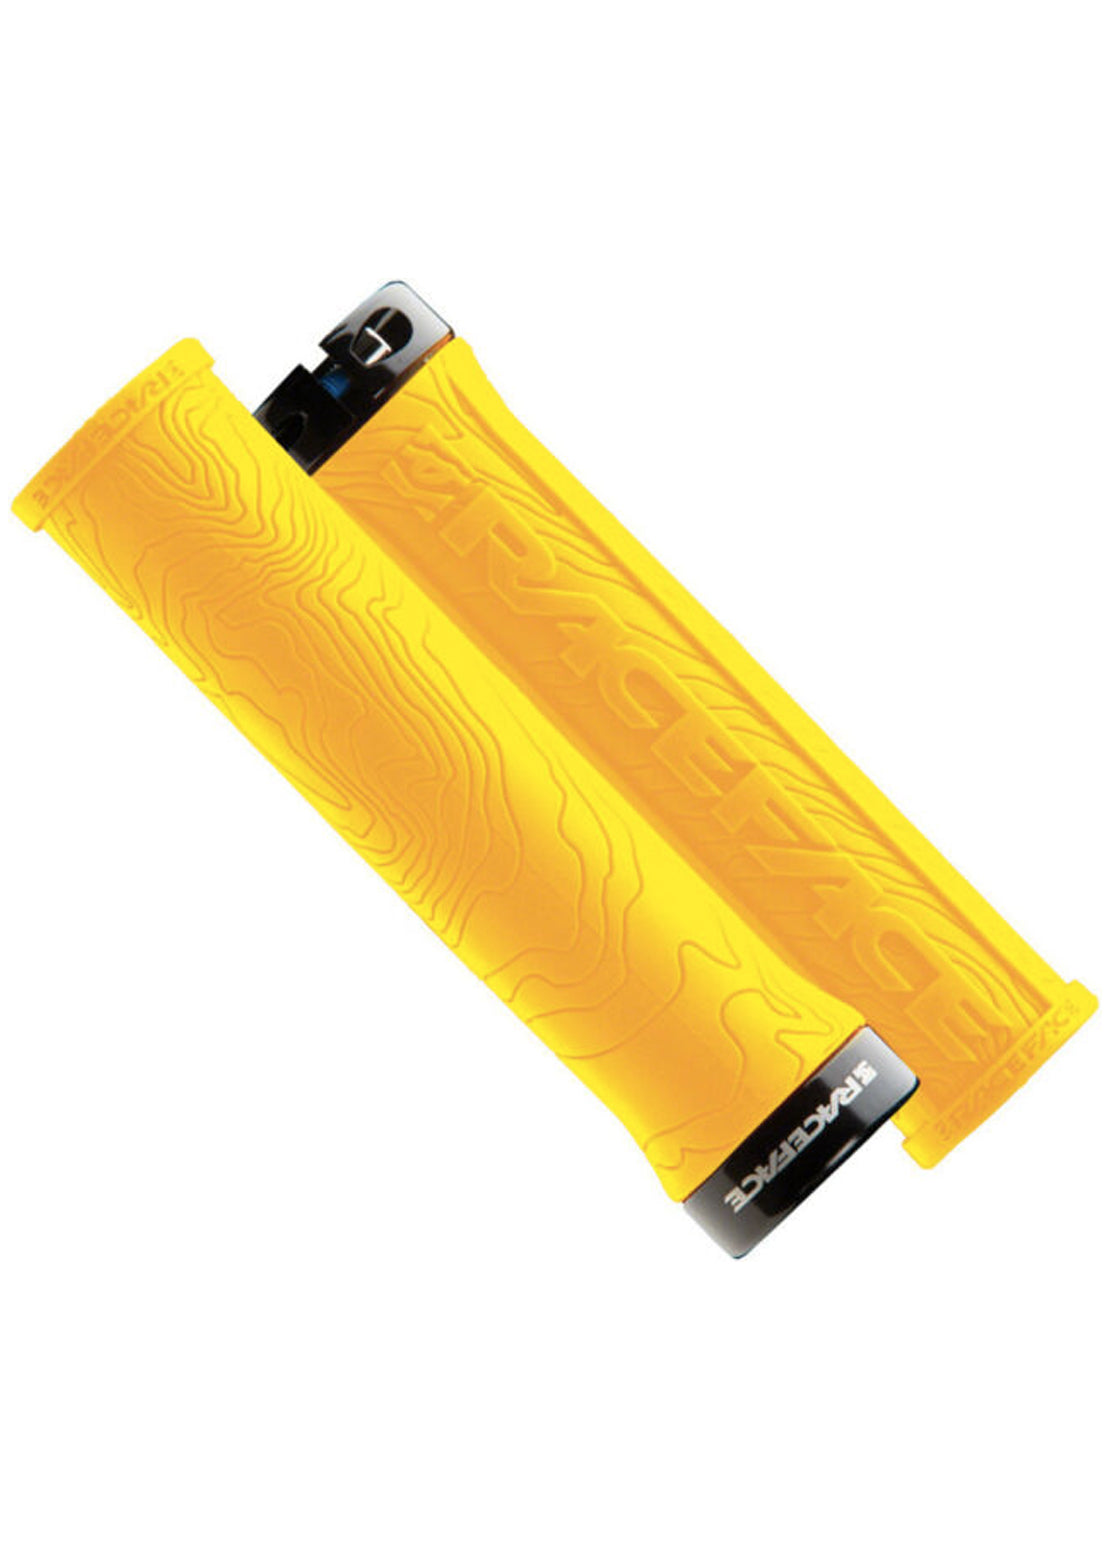 Race Face Half Nelson Single Lock On Grips Yellow